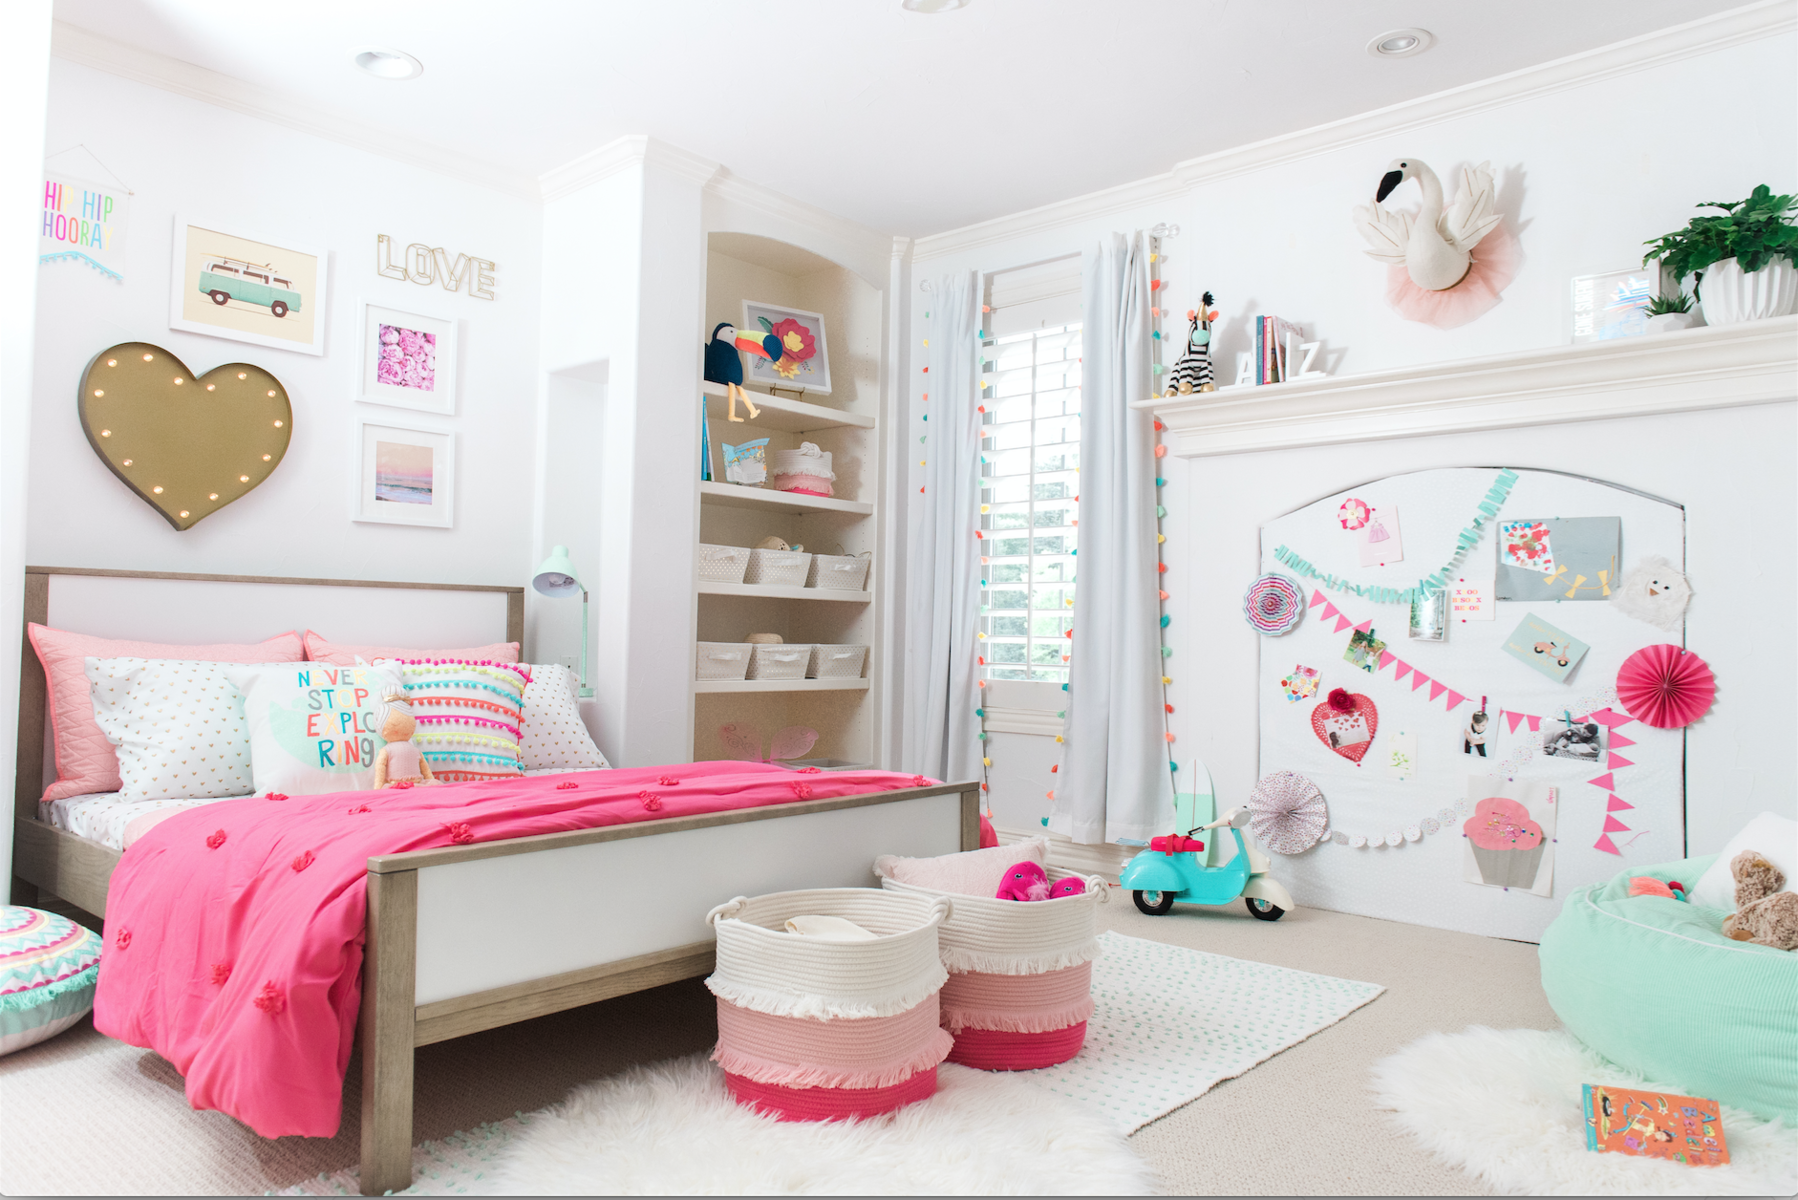 Blogger Leila Lewis Unveils 3 Adorable Kids' Room Redos—Major Decor Inspo Ahead!